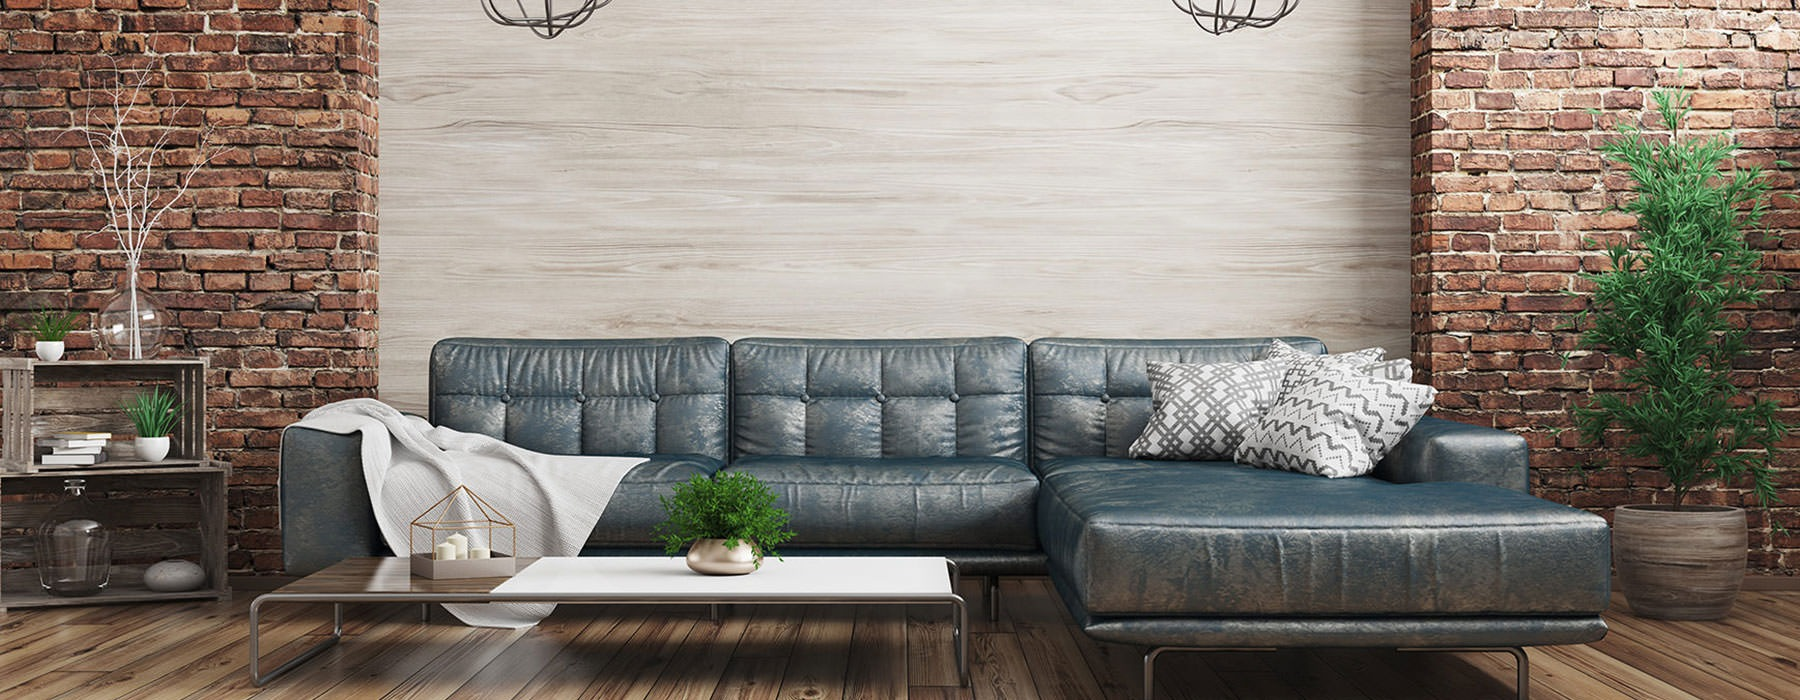 spacious room with brick accents and a large couch